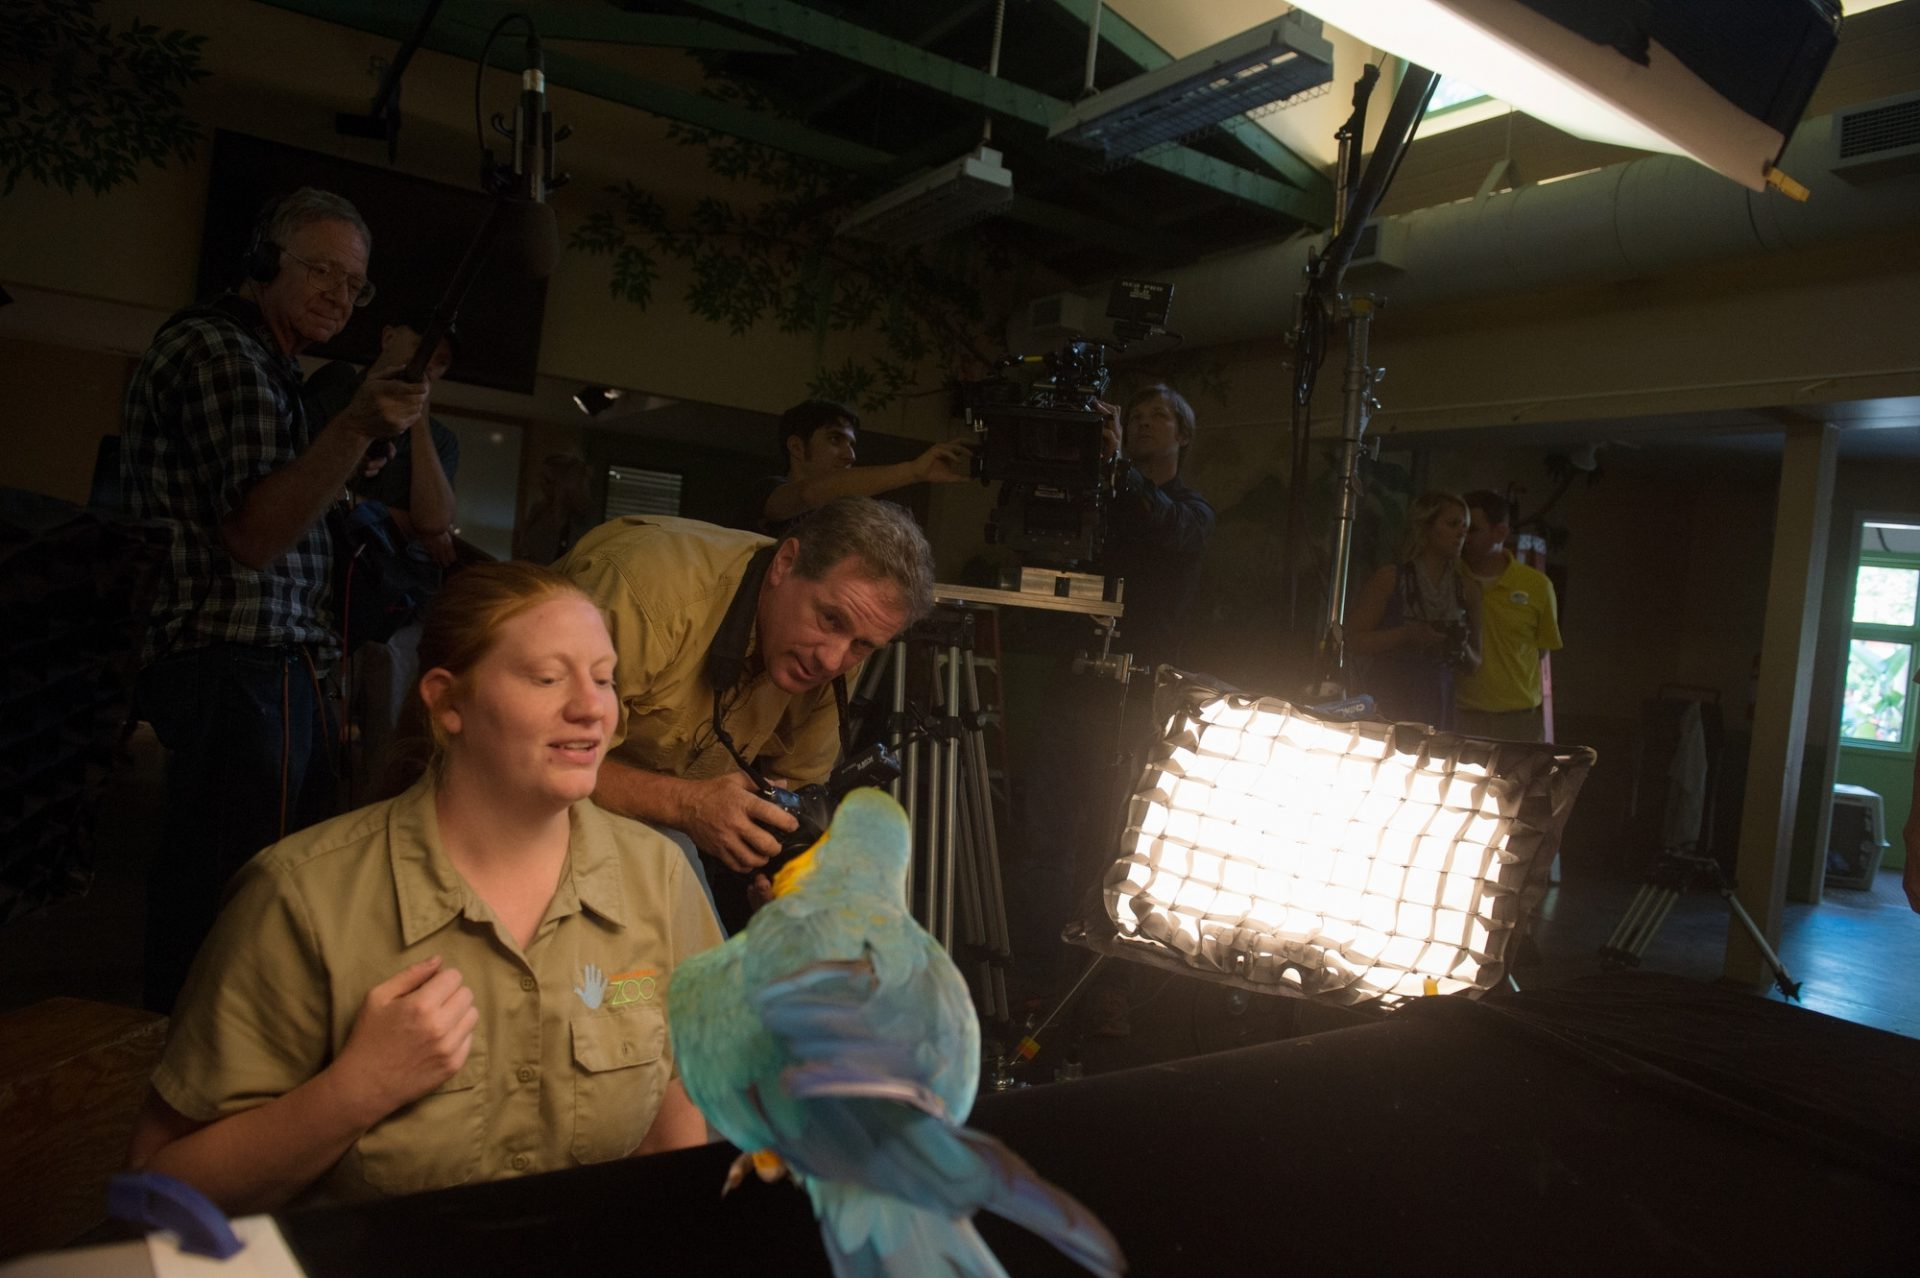 A zookeeper prepares a blue and yellow macaw (Ara ararauna) for a photo shoot at the Lincoln Children's Zoo.